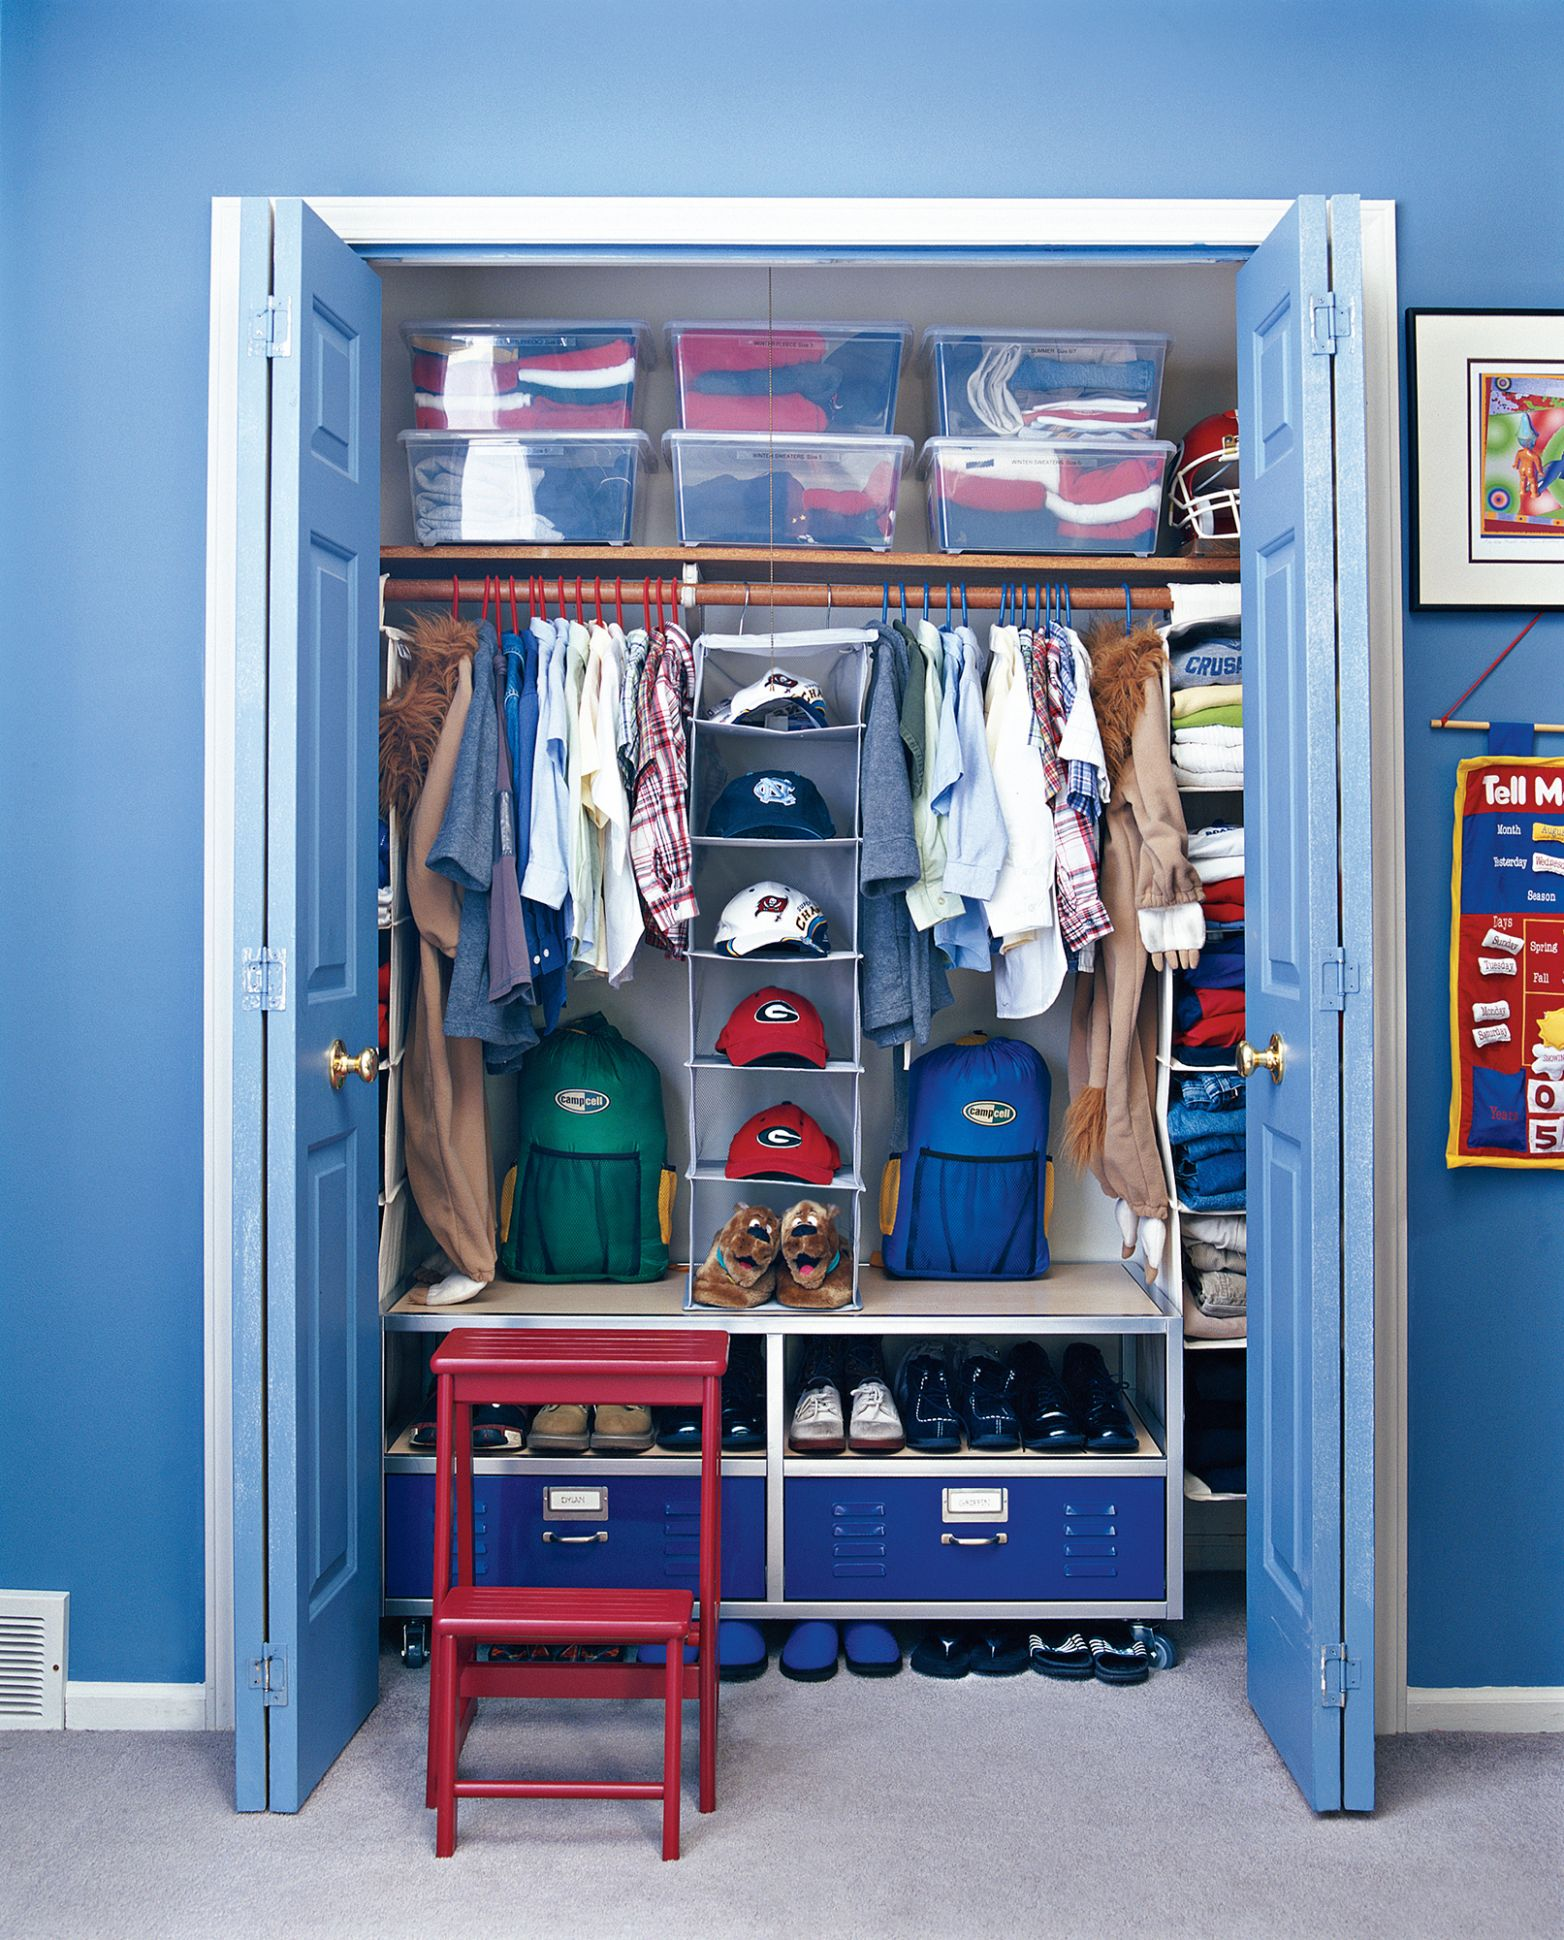 11 Smart Ways to Organize Your Kid's Closet | Real Simple